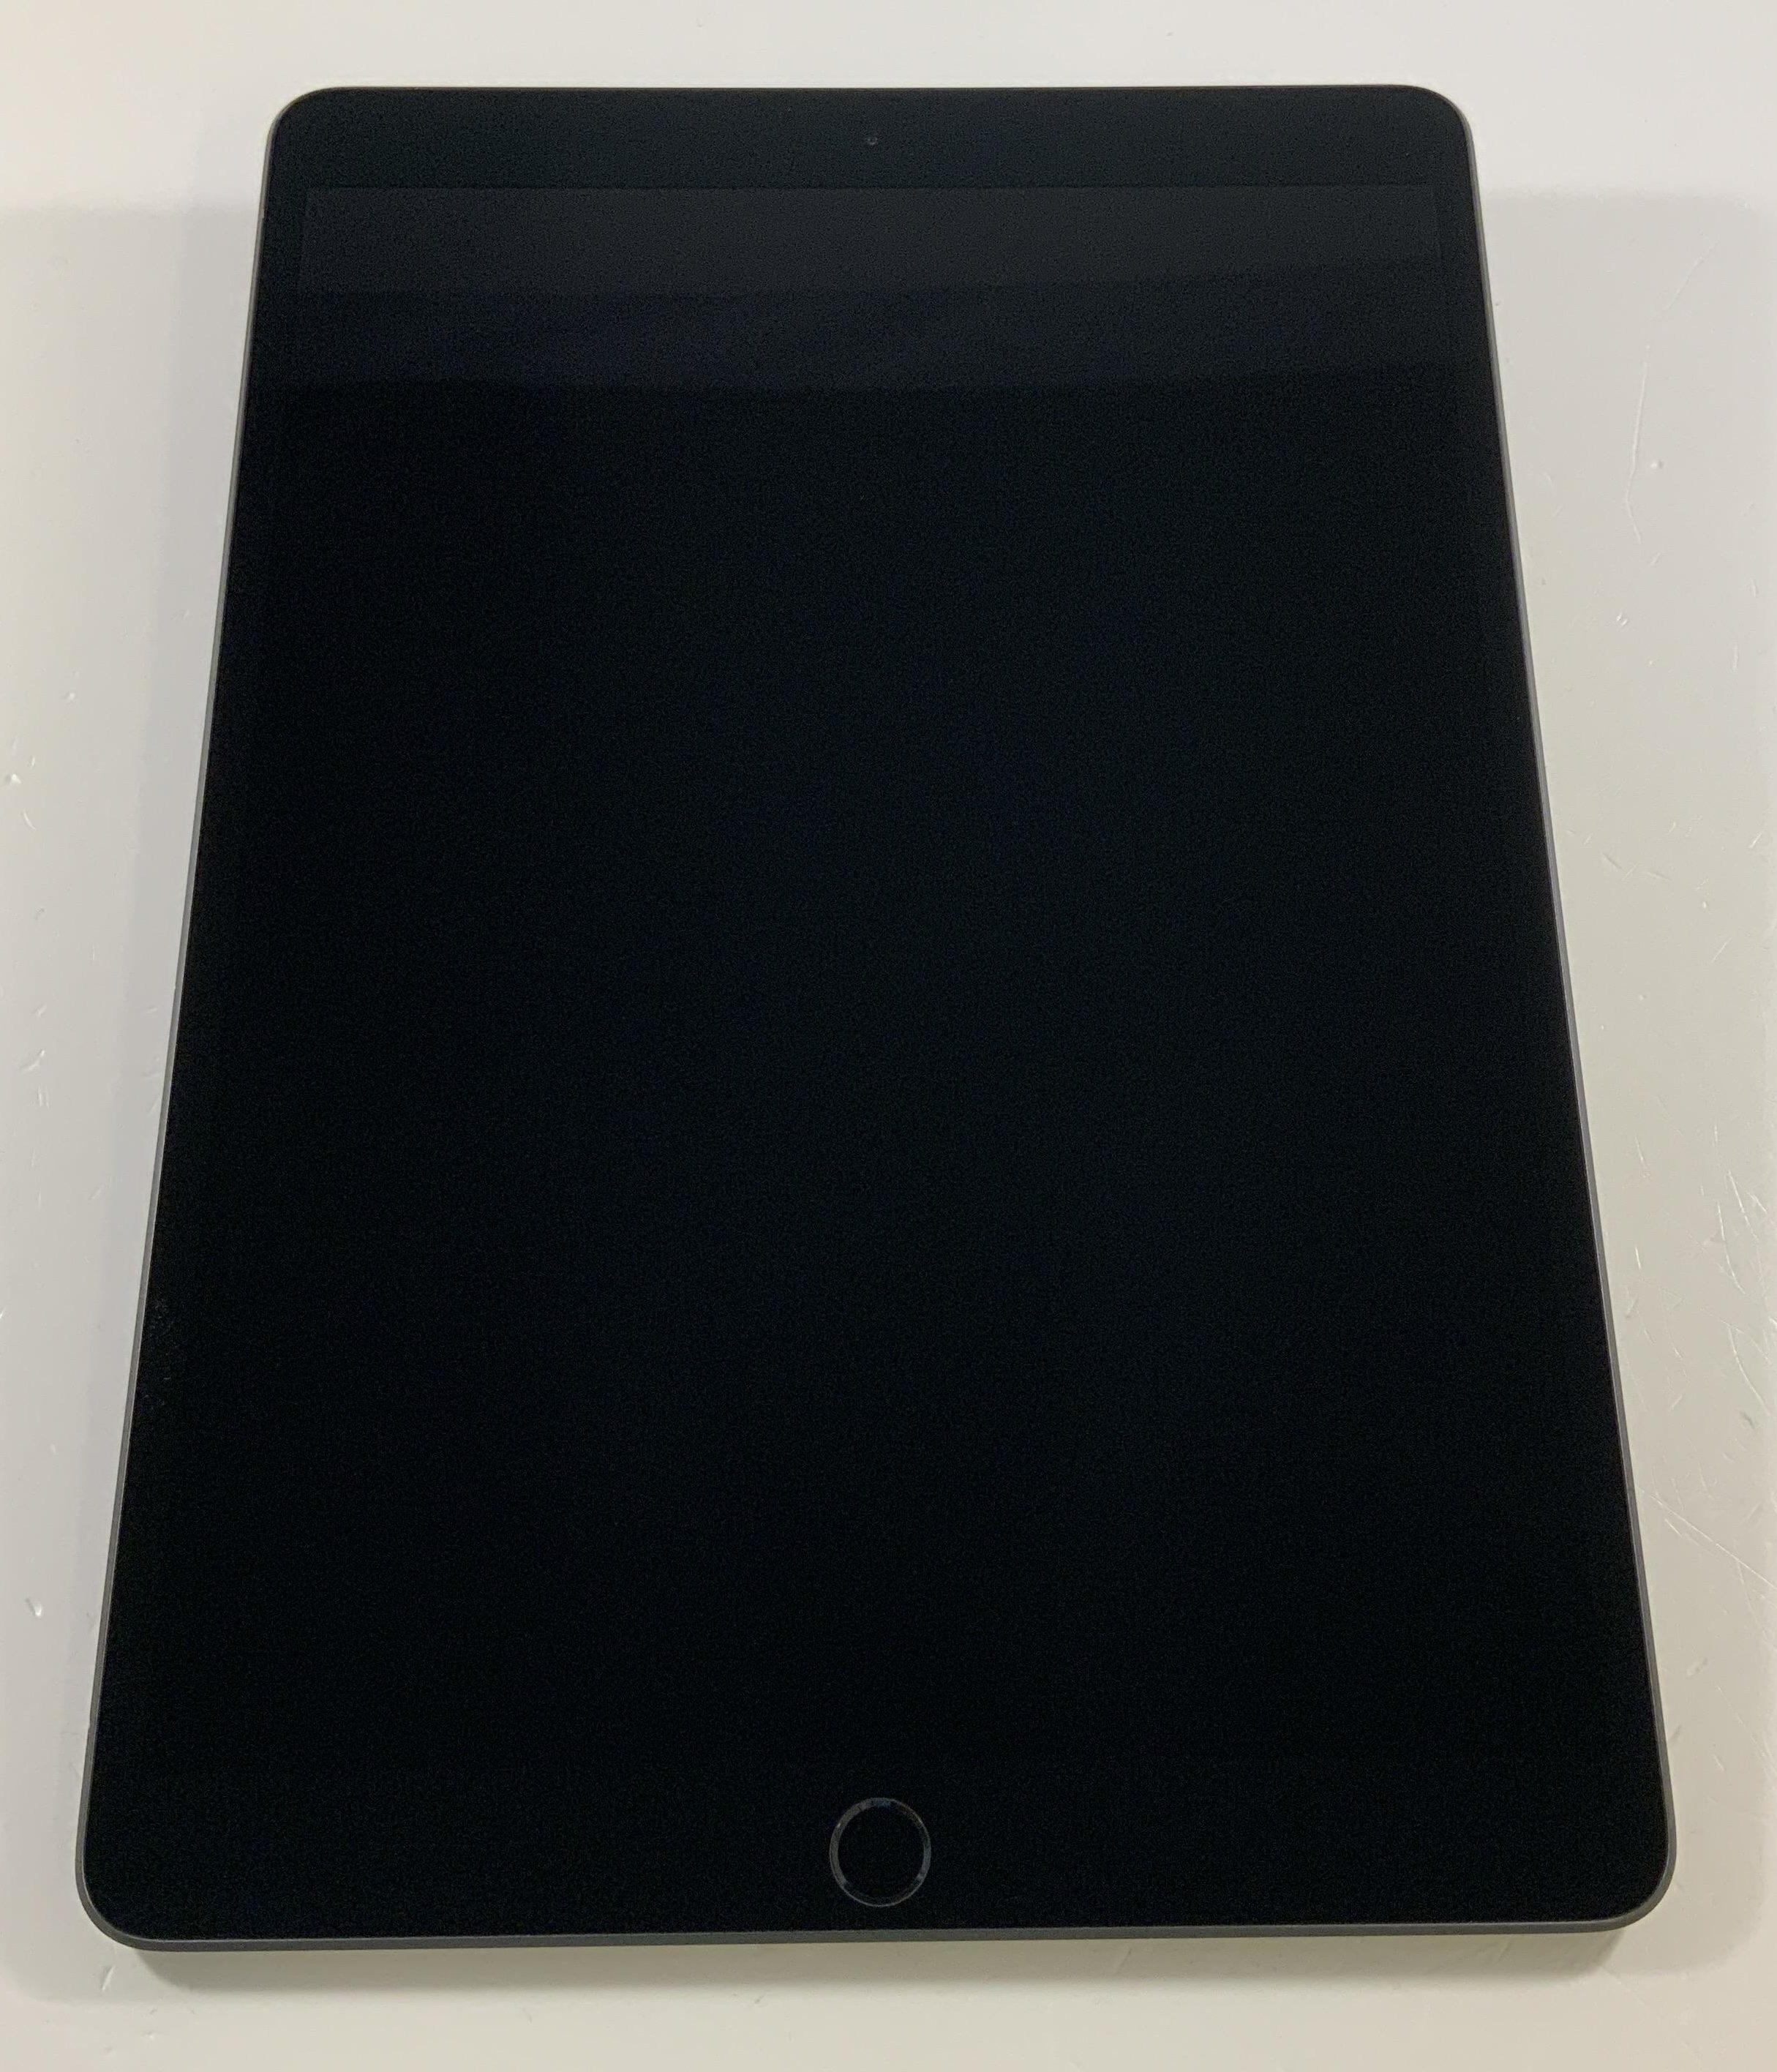 iPad Air 3 Wi-Fi 64GB, 64GB, Space Gray, immagine 1